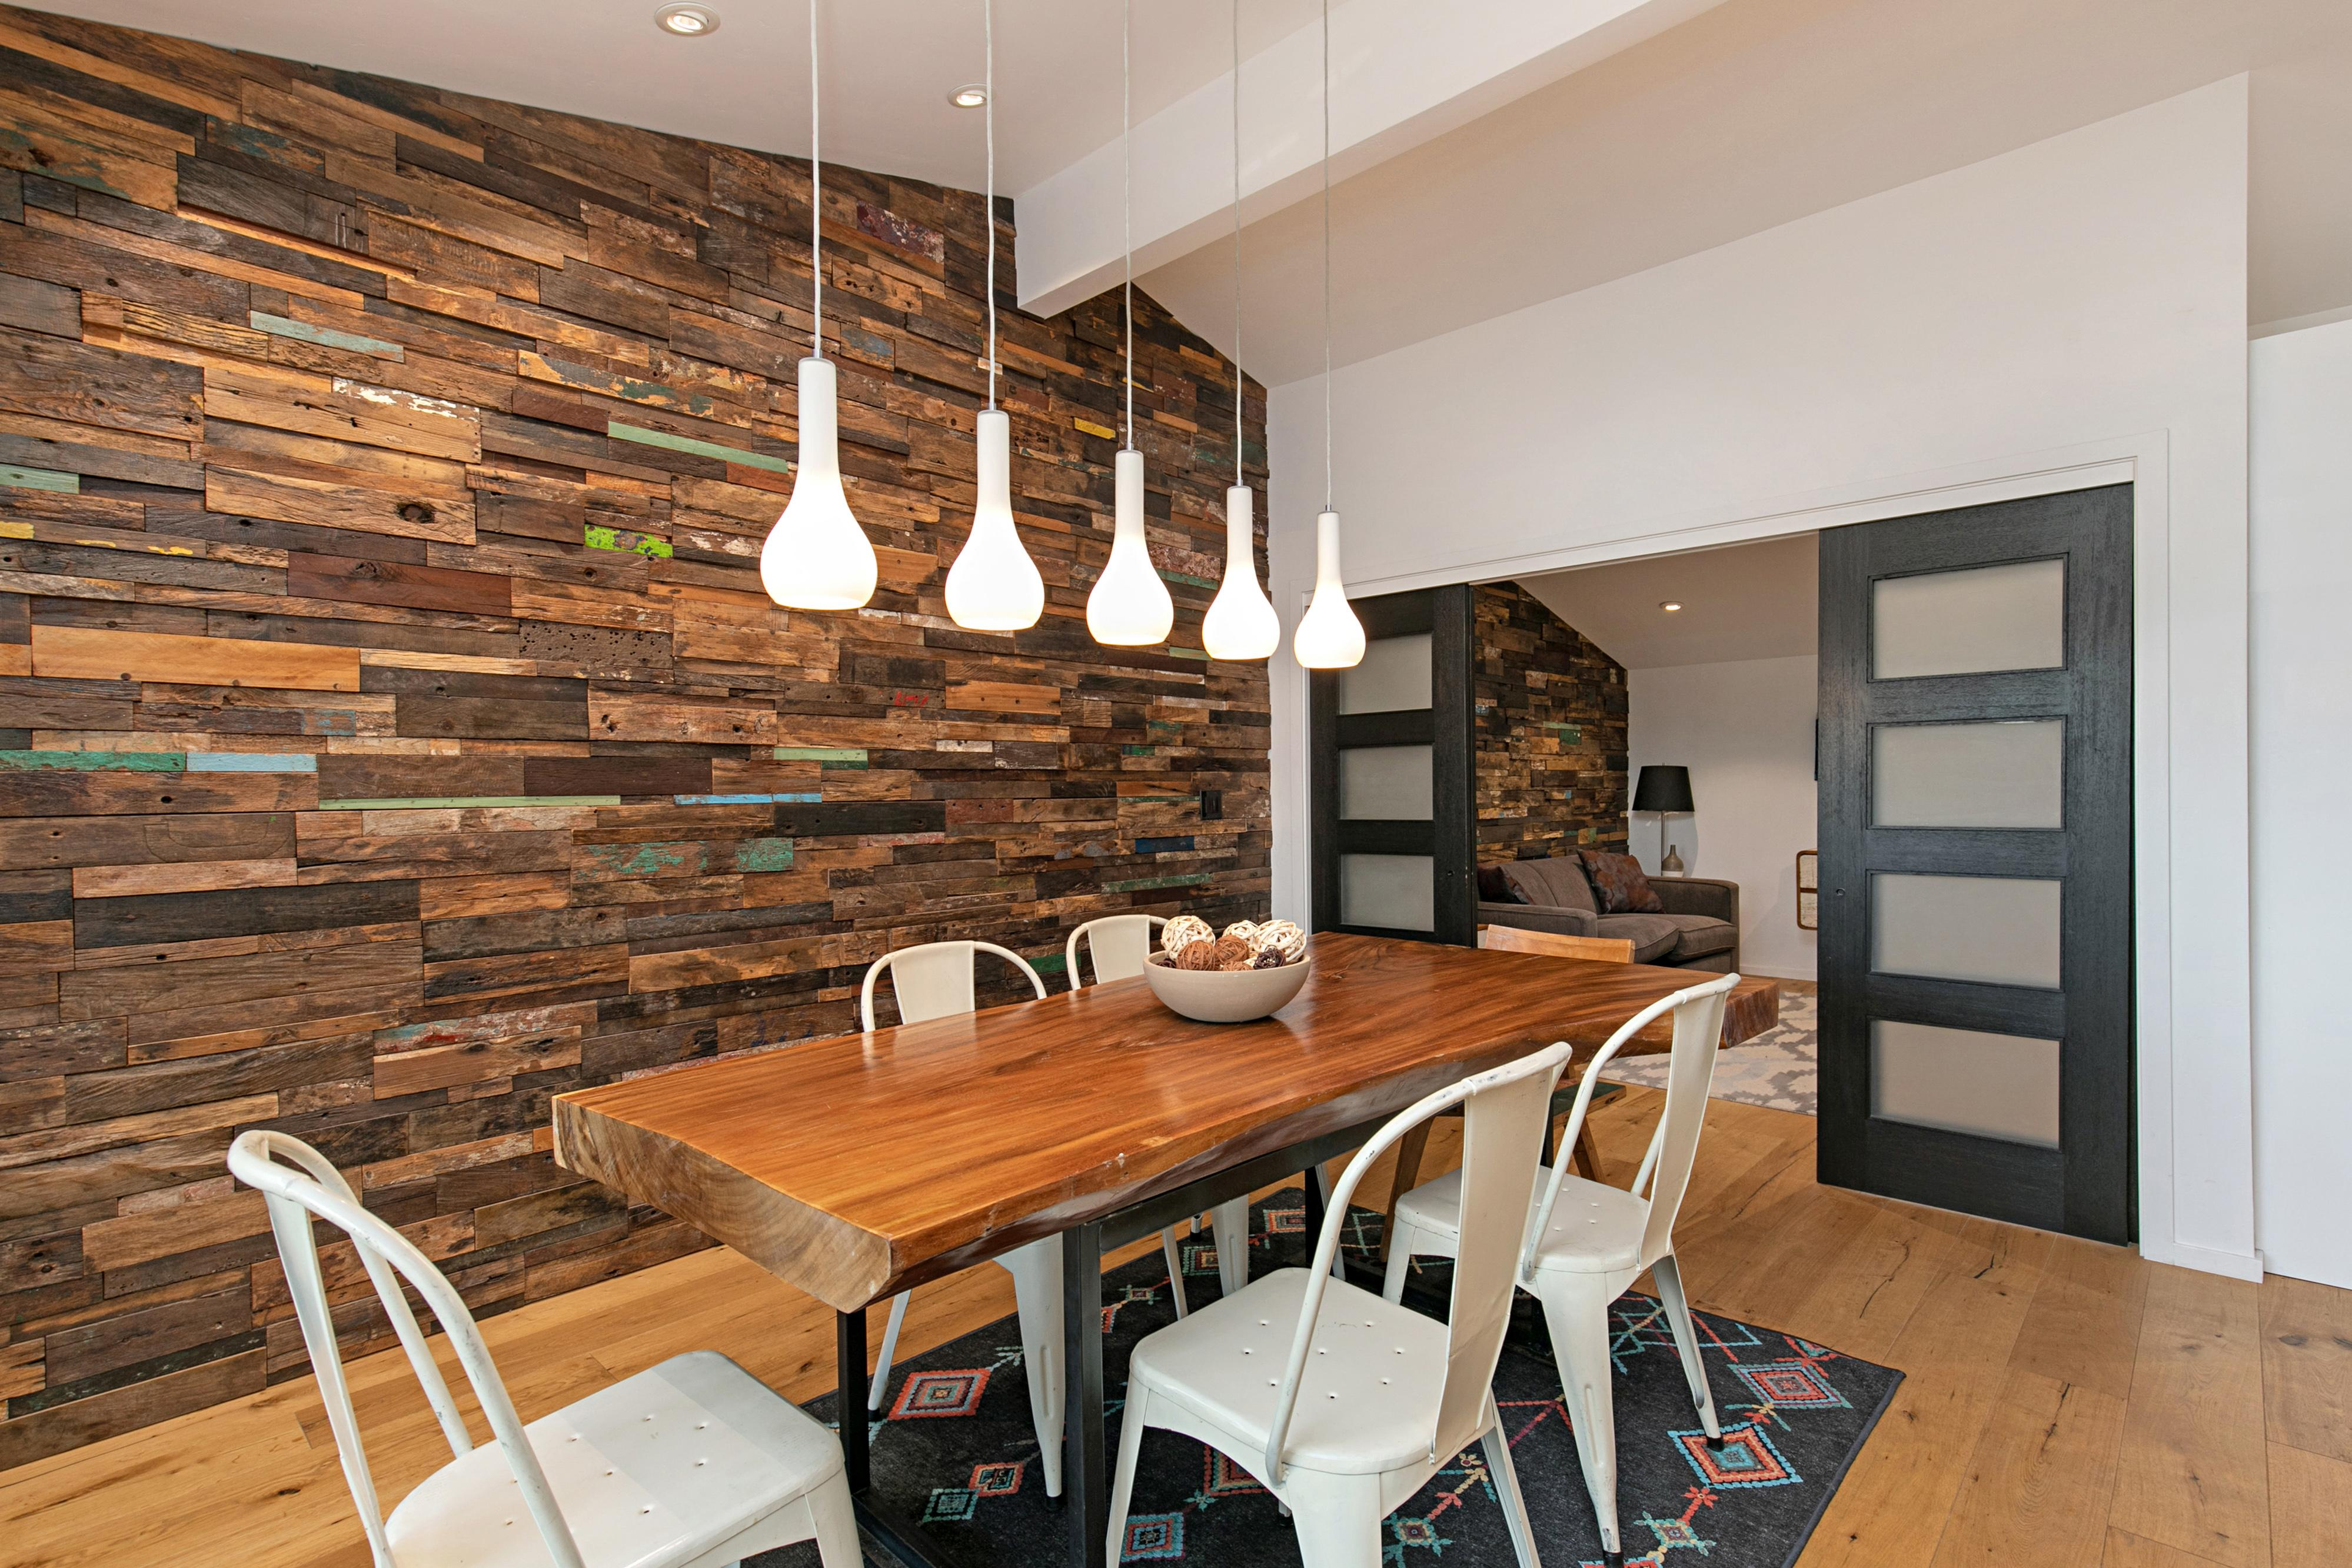 When it's time to eat, gather around a reclaimed wood table and share a home-cooked meal.